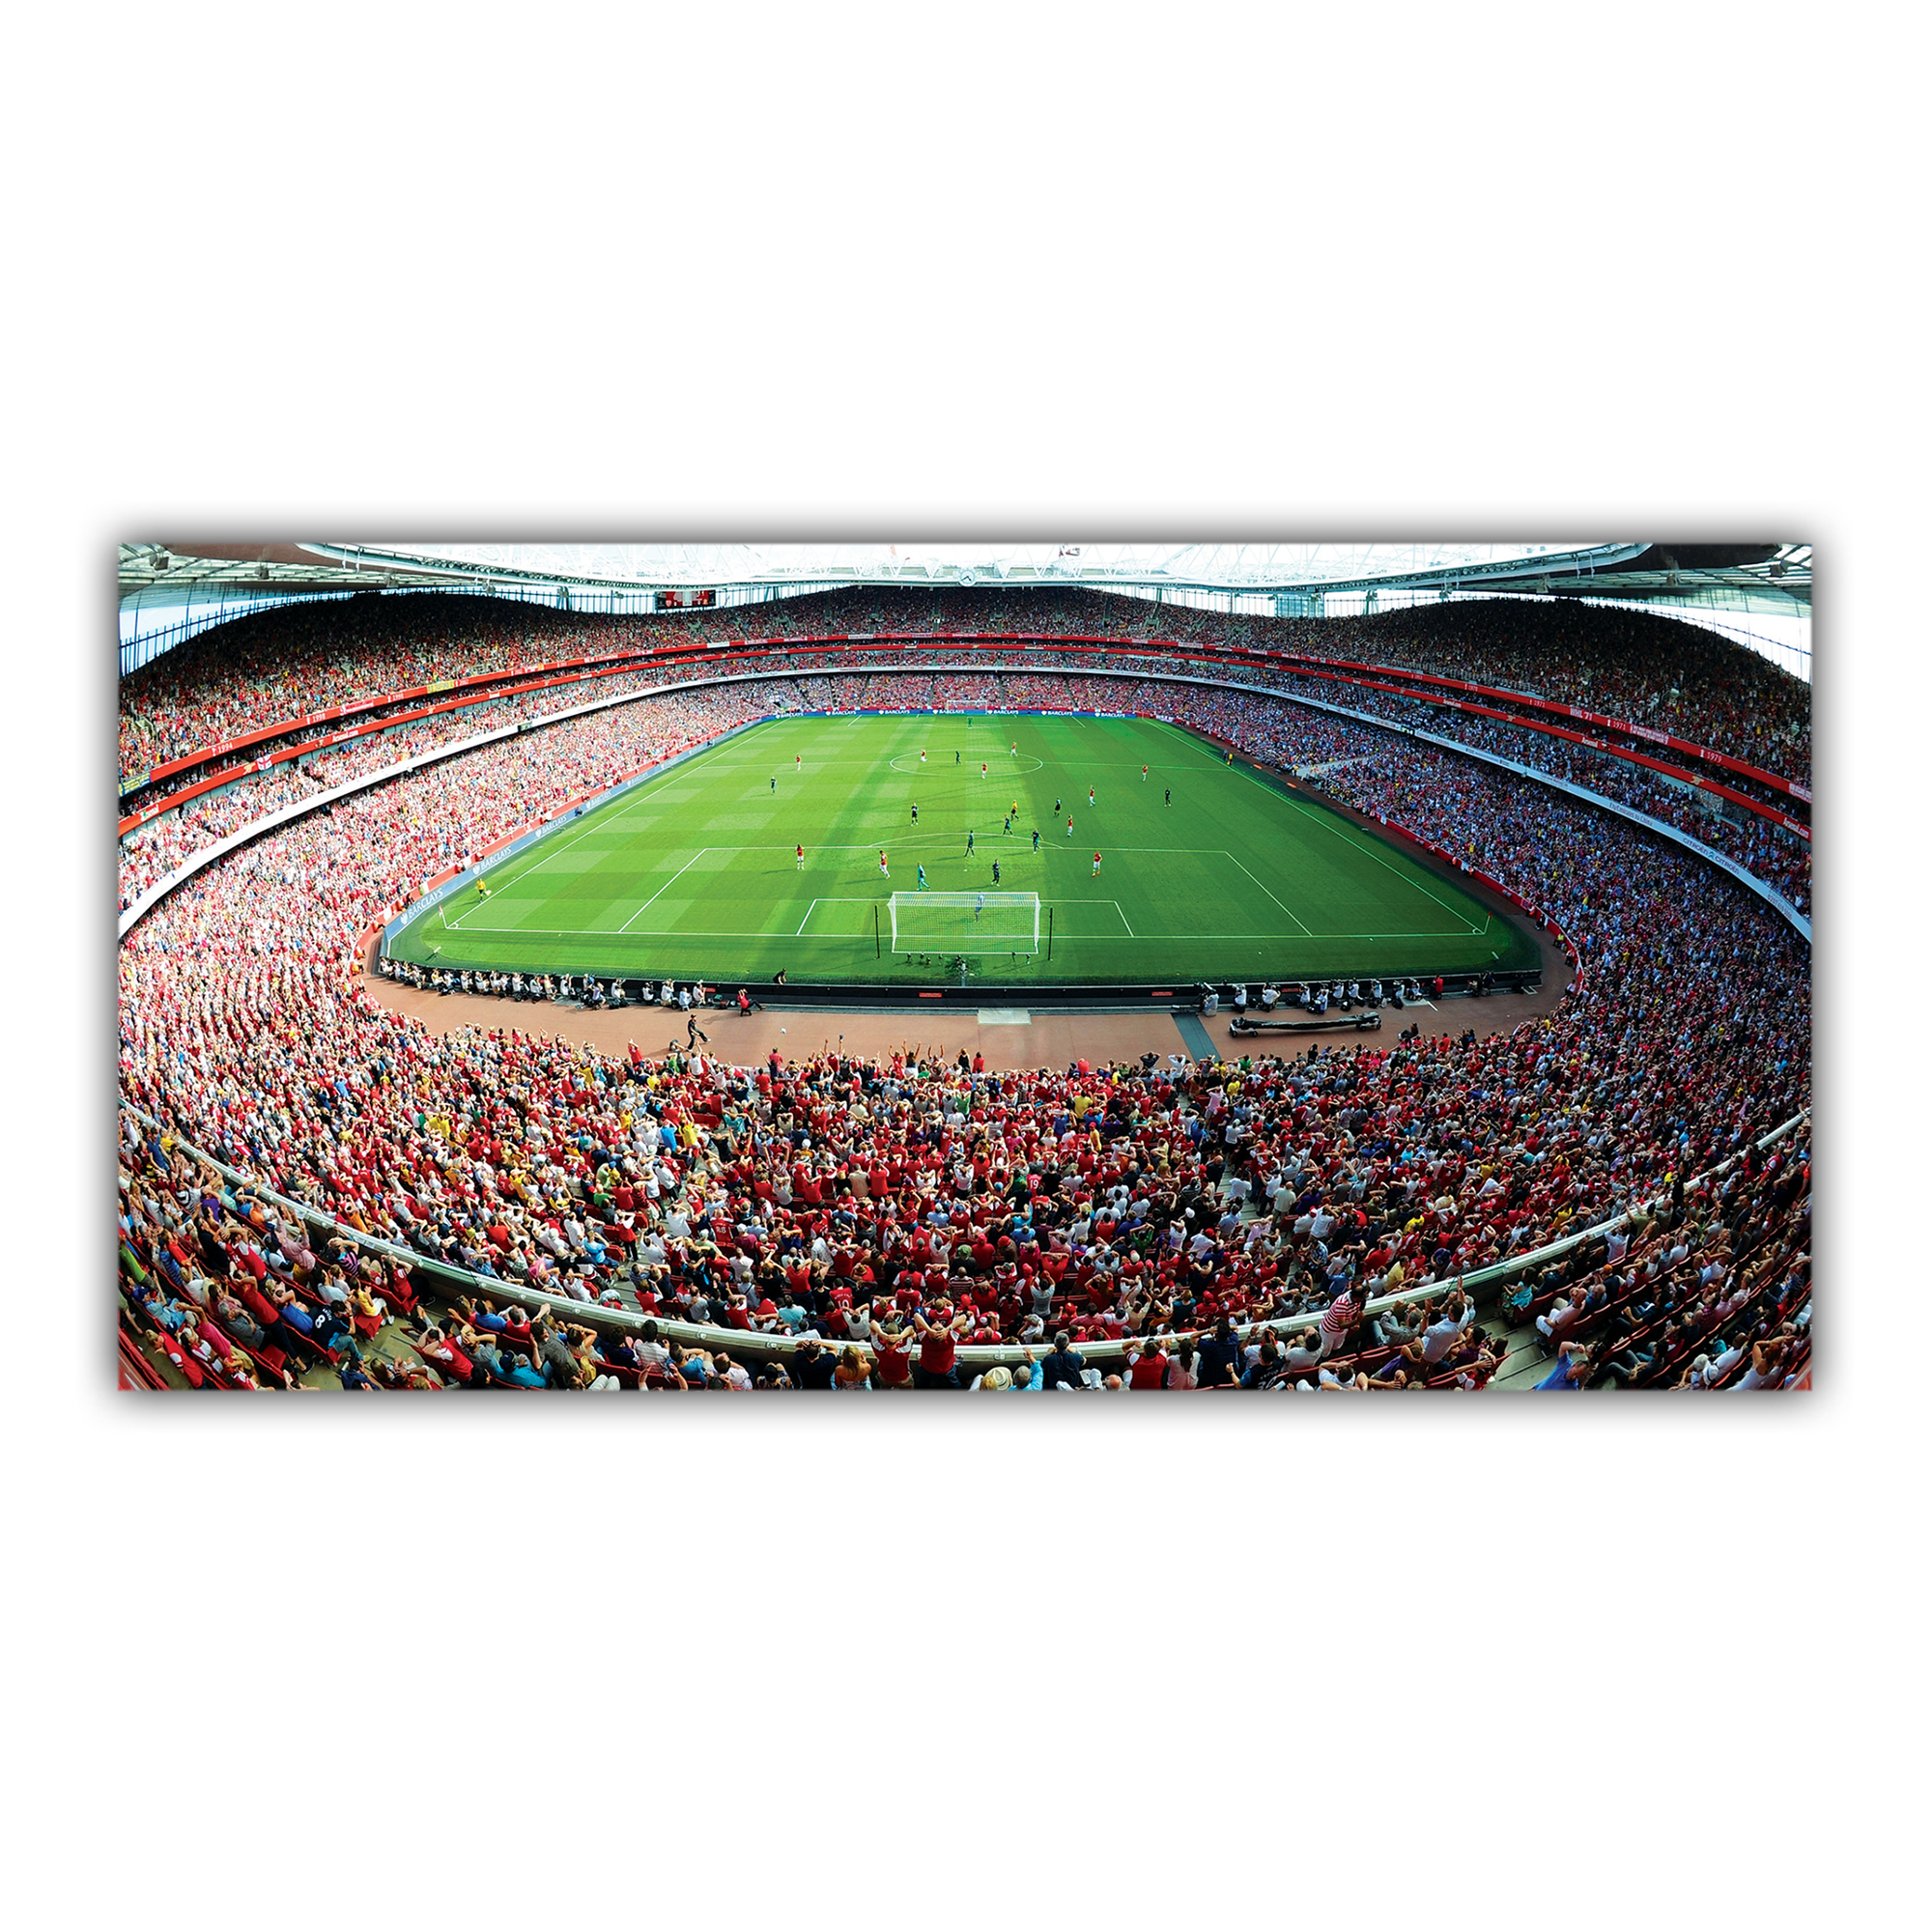 Arsenal Emirates Stadium Football Club Stade